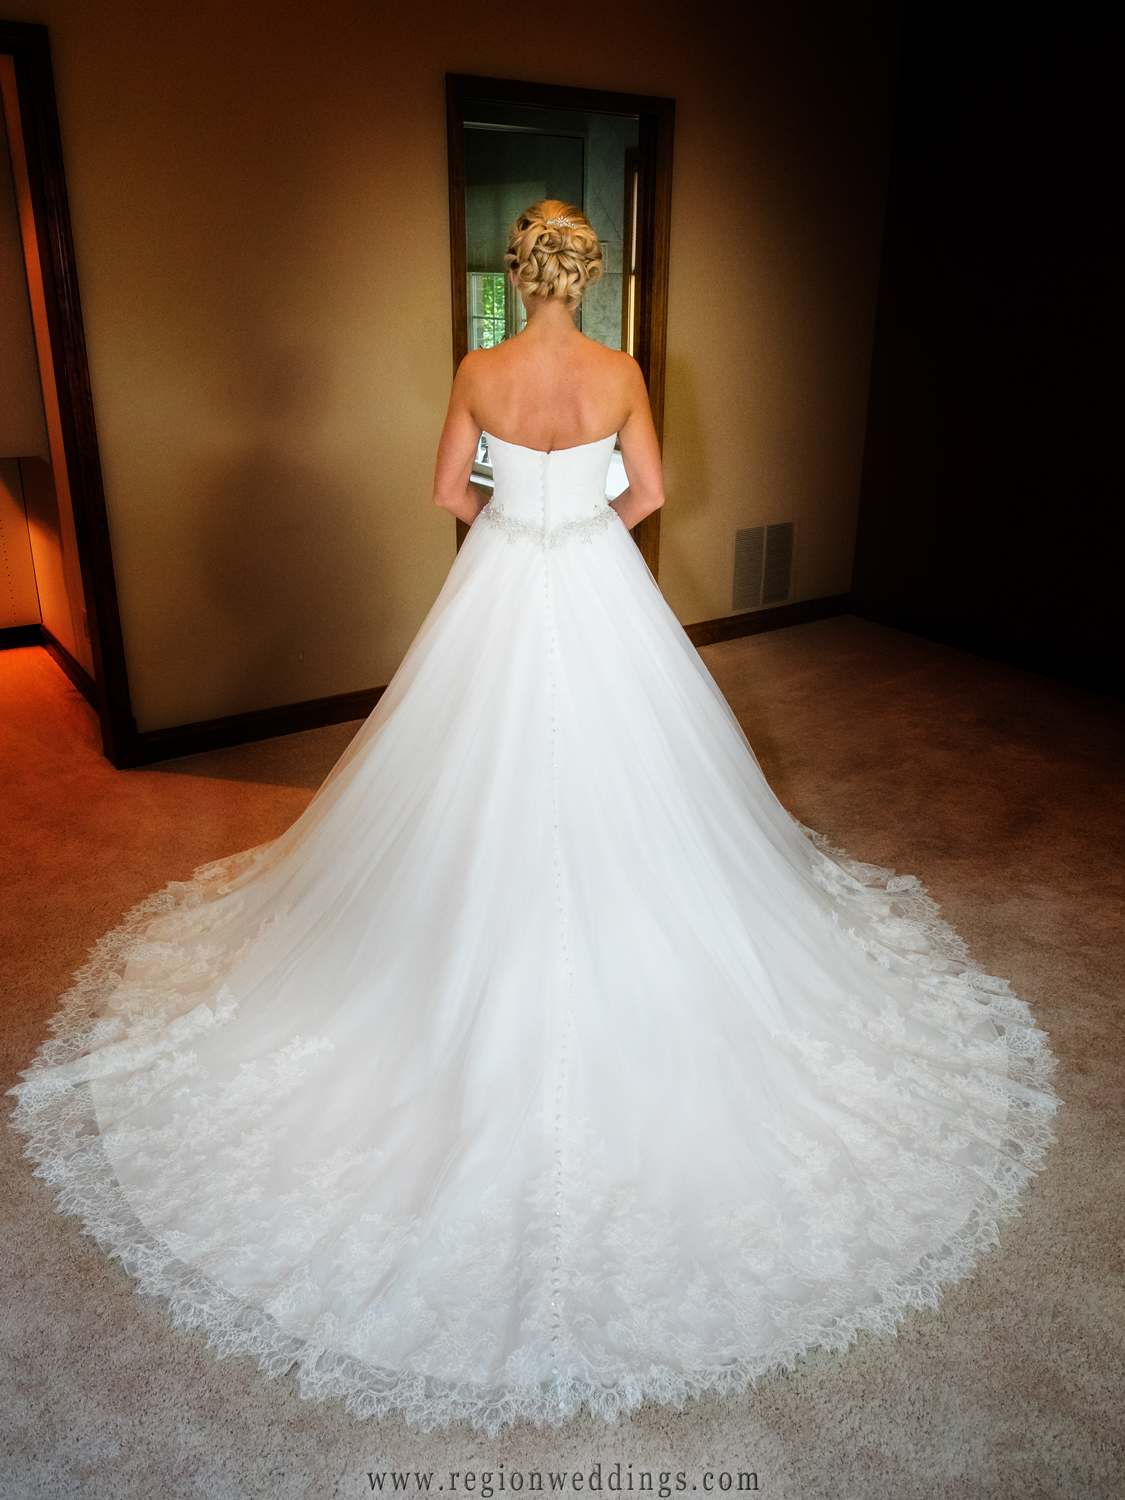 The bride shows off the back of her dress.